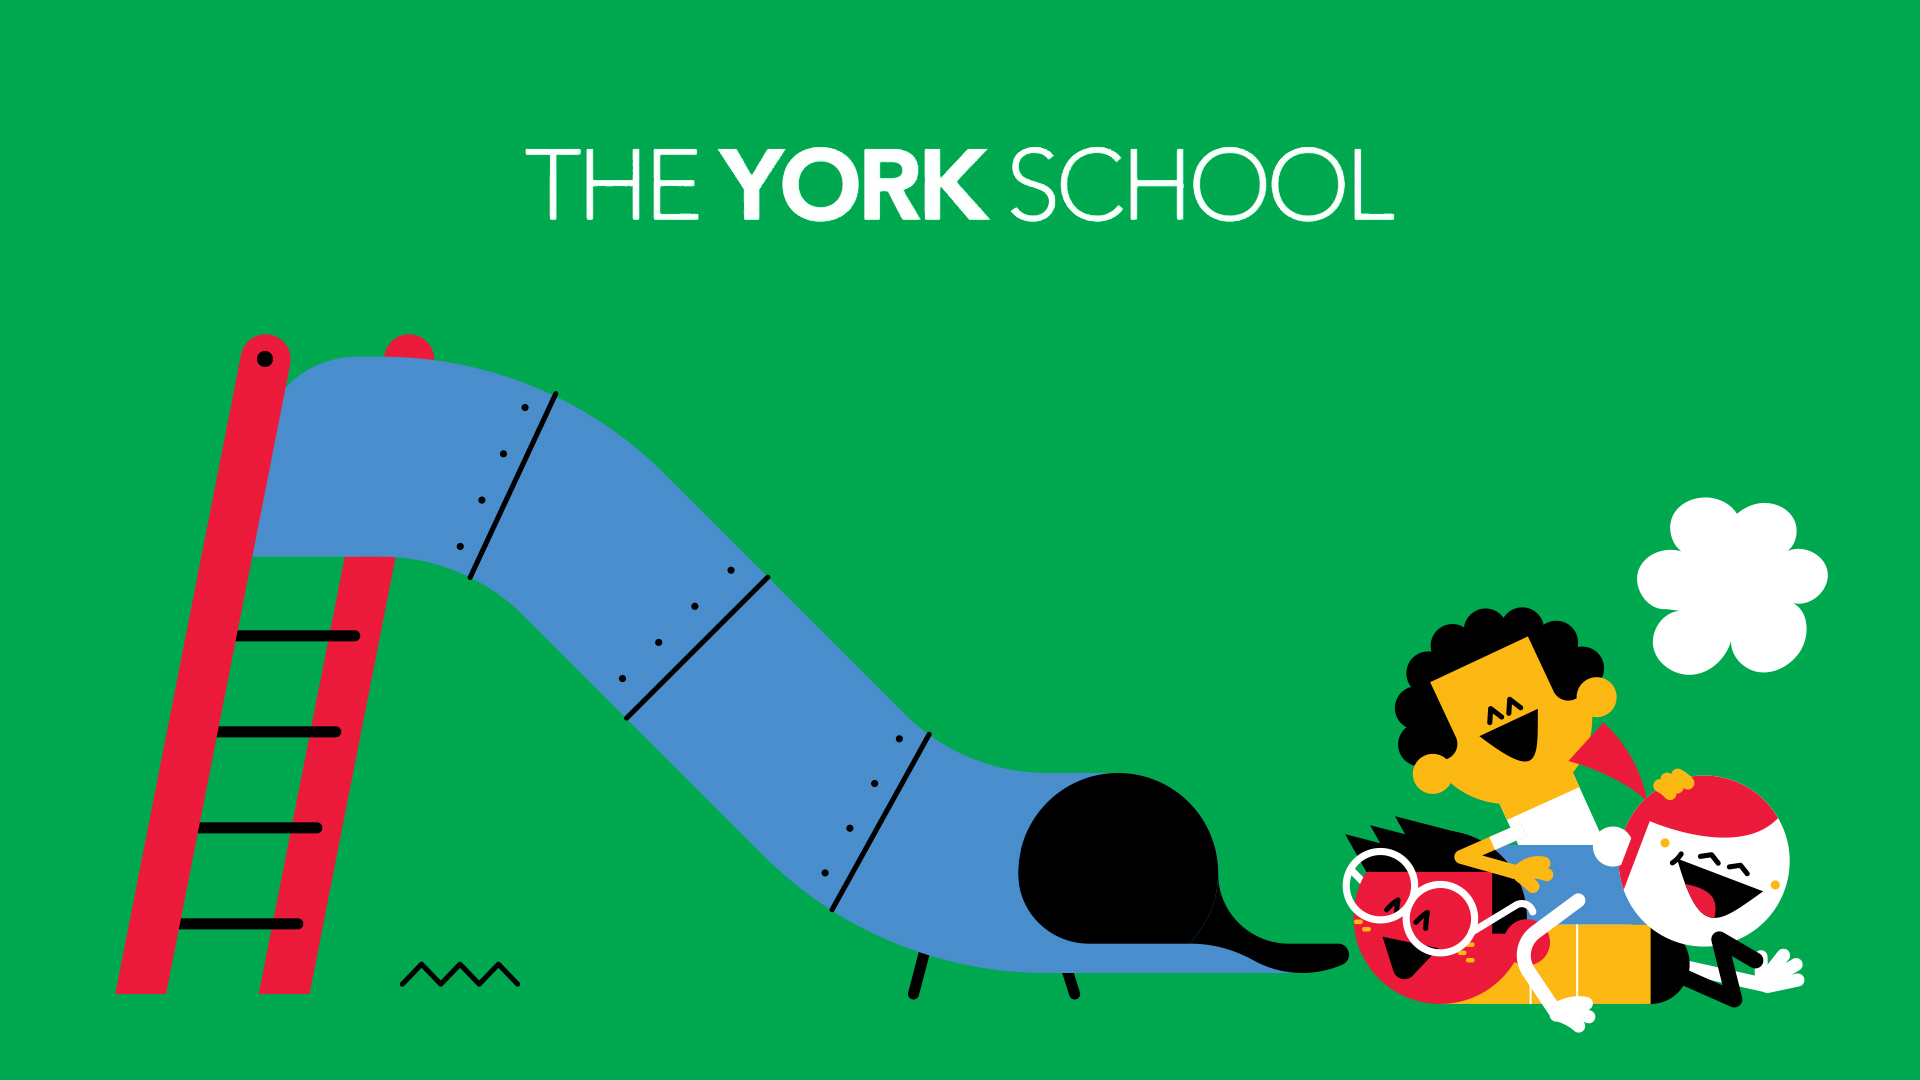 theyorkschool.jpg